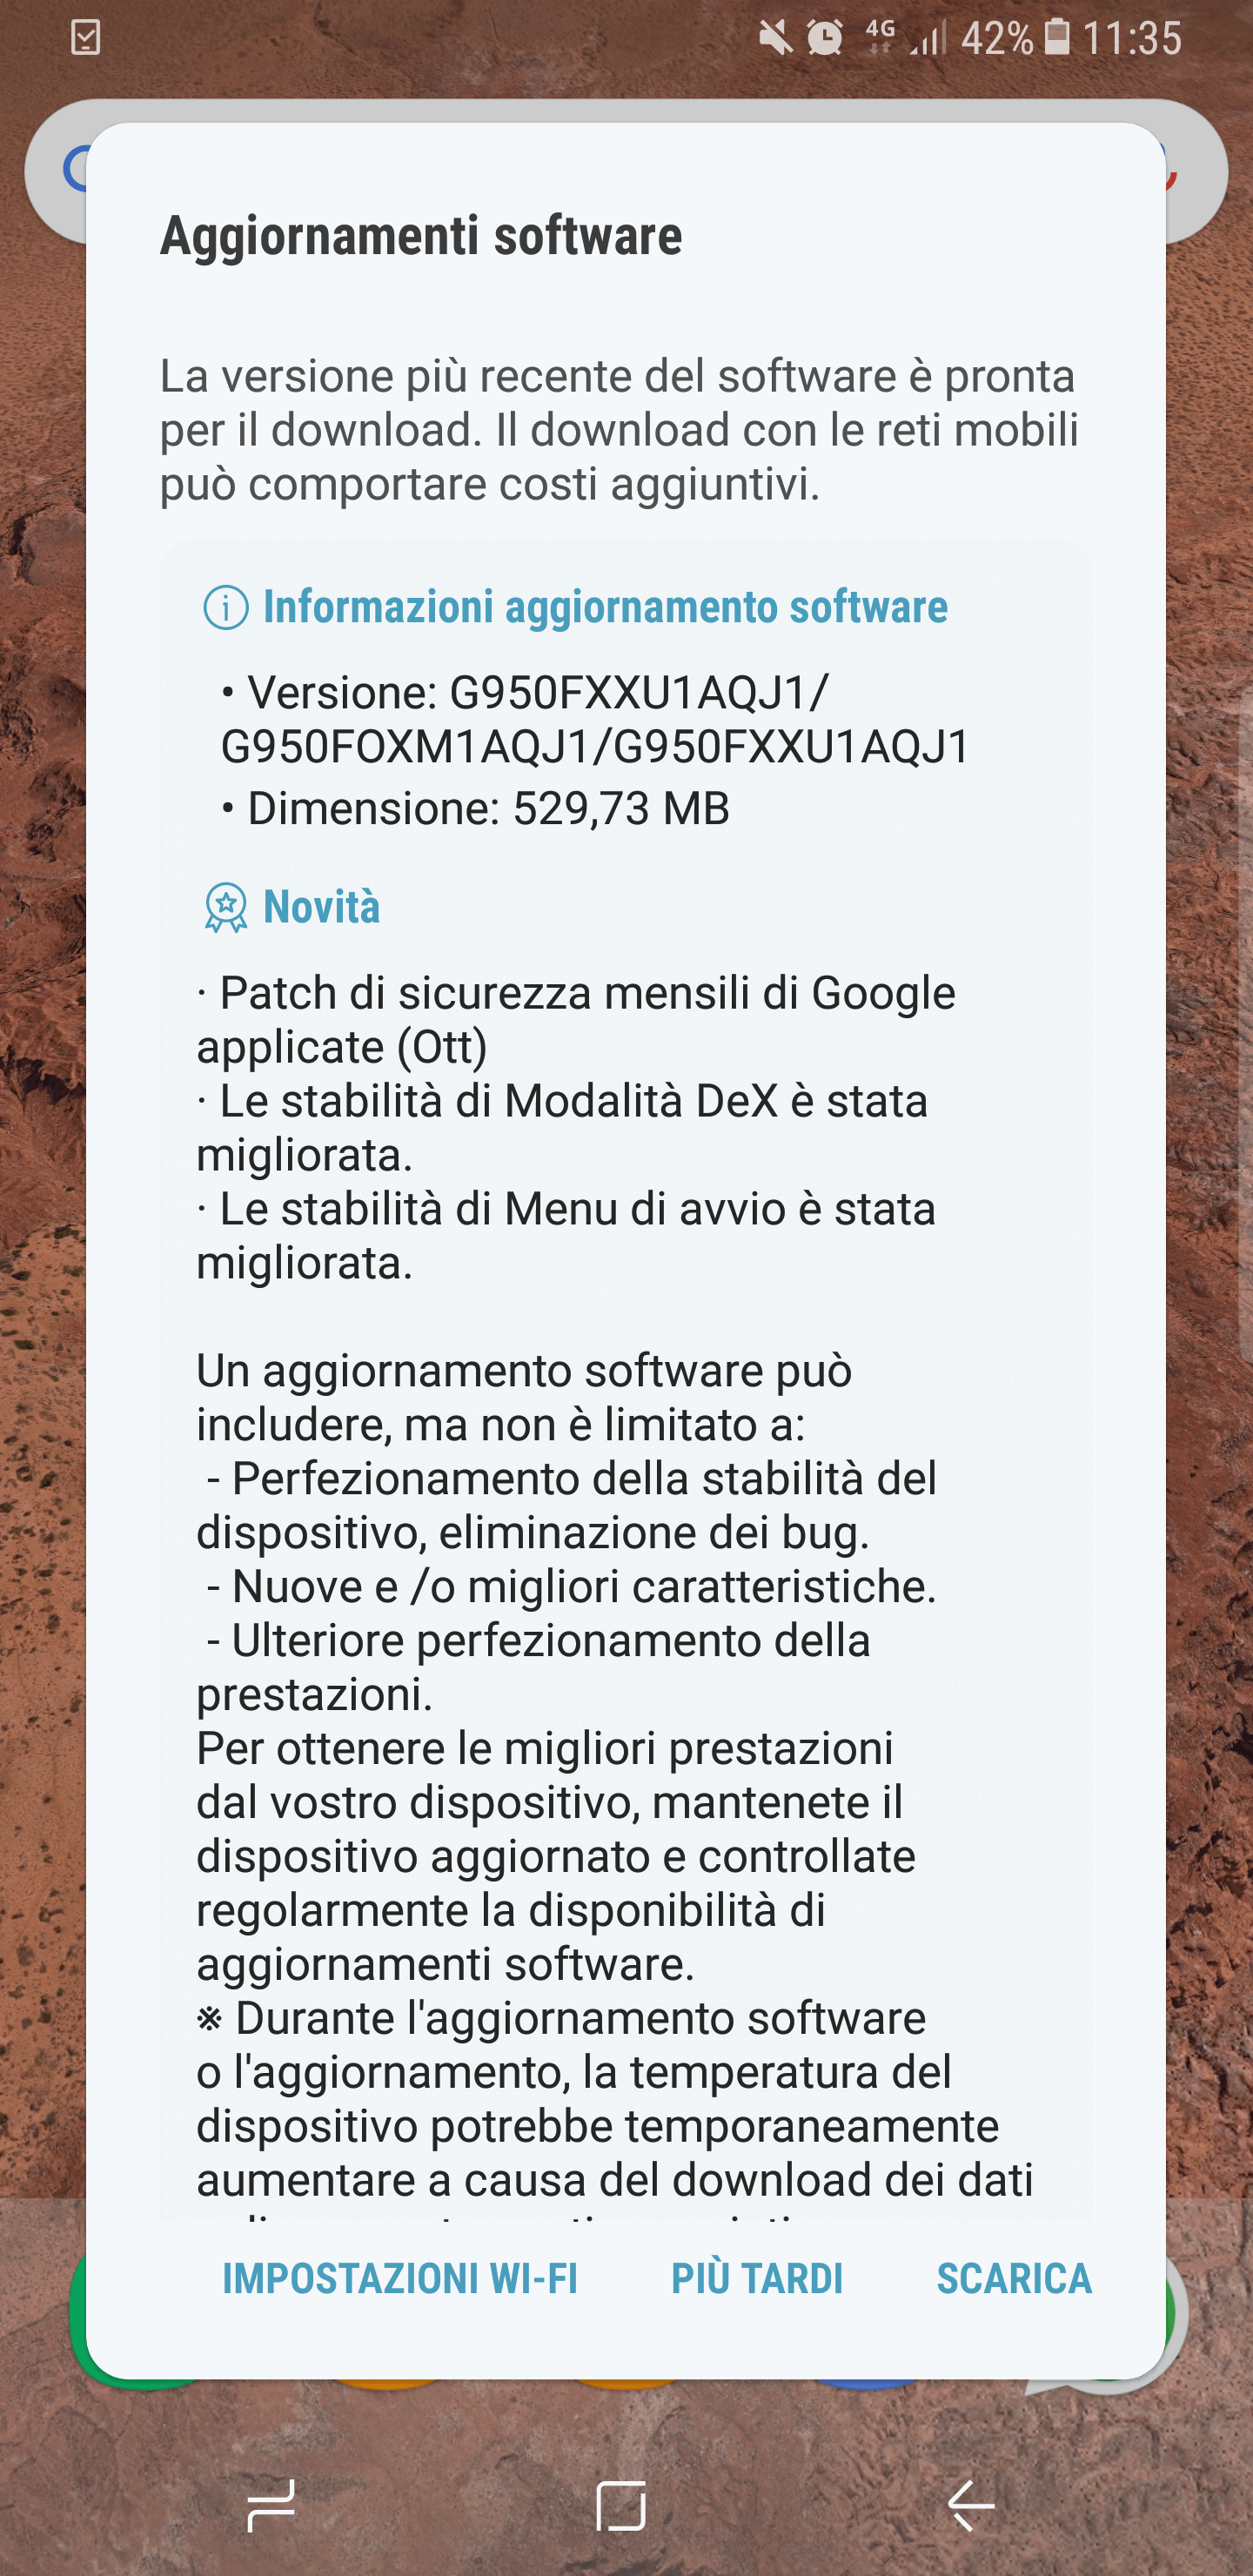 Galaxy S8 - patch ottobre 2017